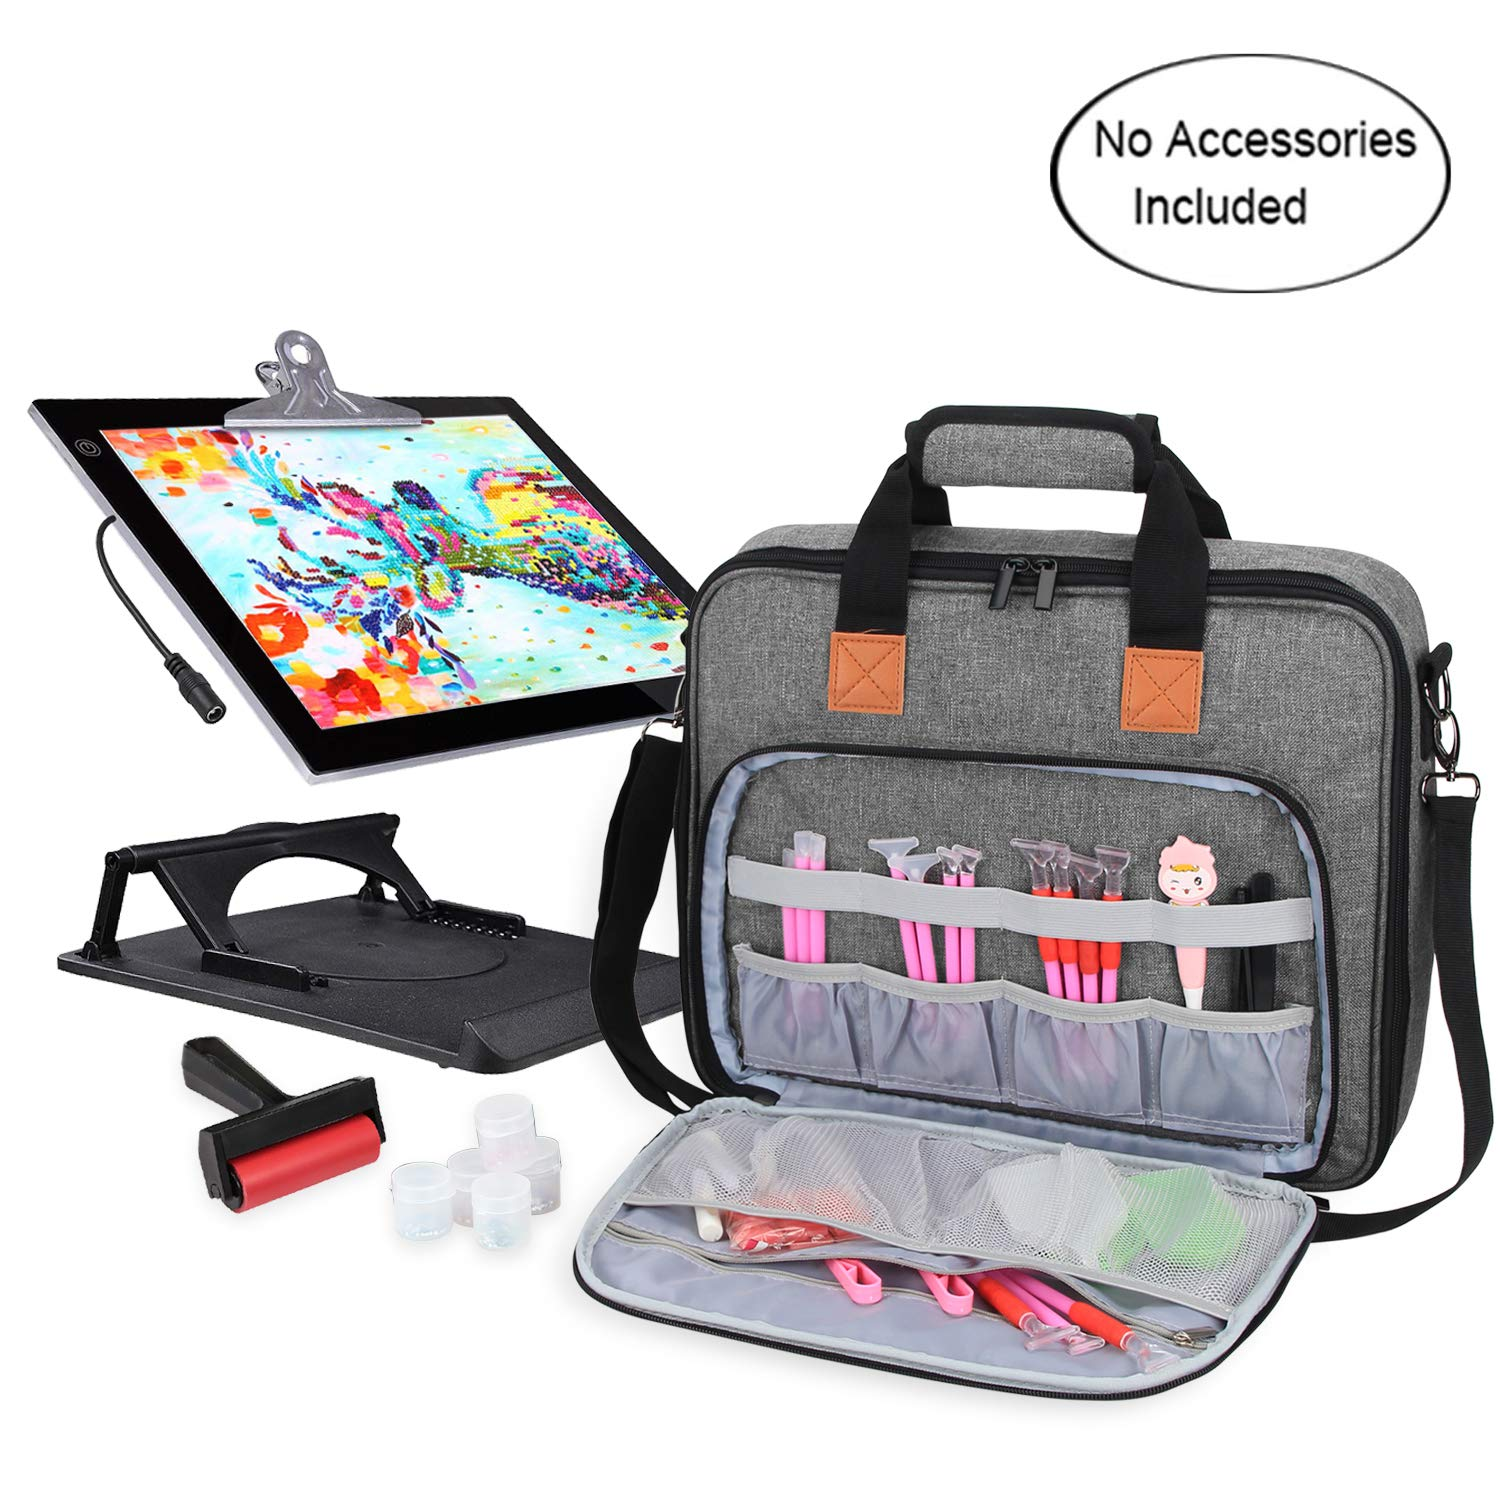 Luxja Carrying Bag for A4 Light Pad and Diamond Painting Tools, Protective Case for Diamond Painting Light Box and Accessories(Fits for A4 Light Pad), Gray by LUXJA